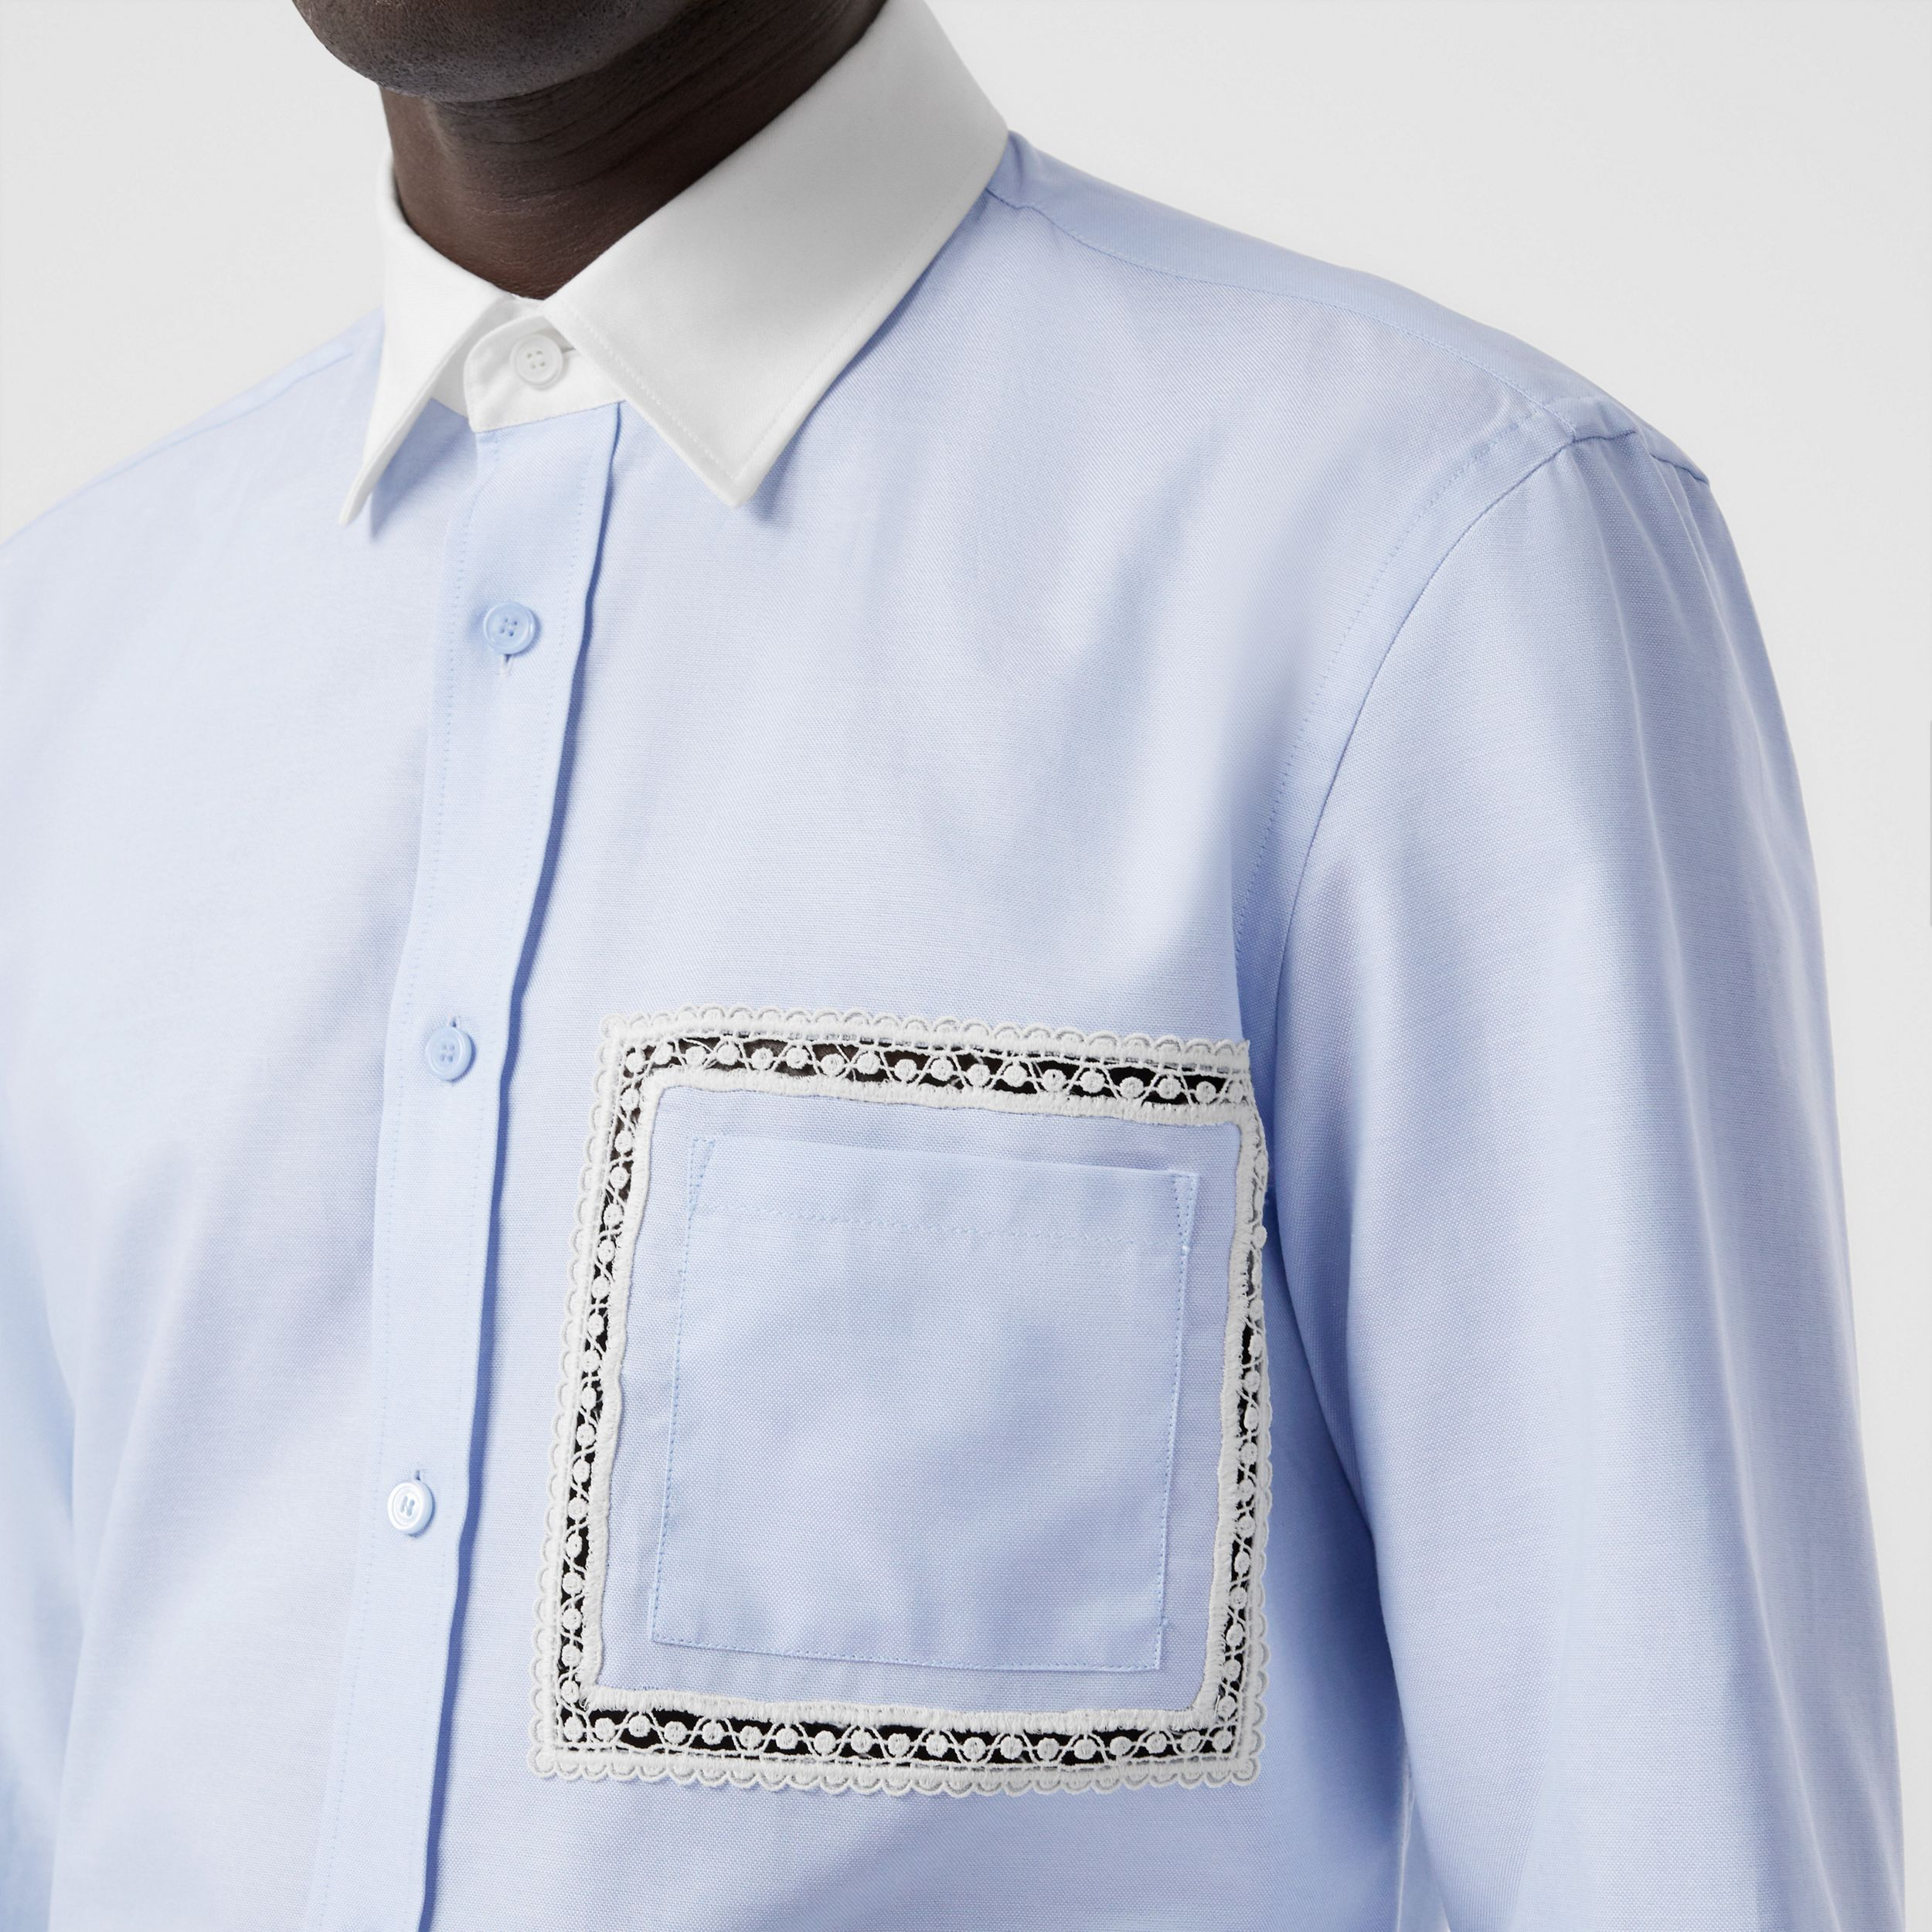 Classic Fit Lace Detail Cotton Oxford Shirt in Pale Blue - Men | Burberry Australia - 2